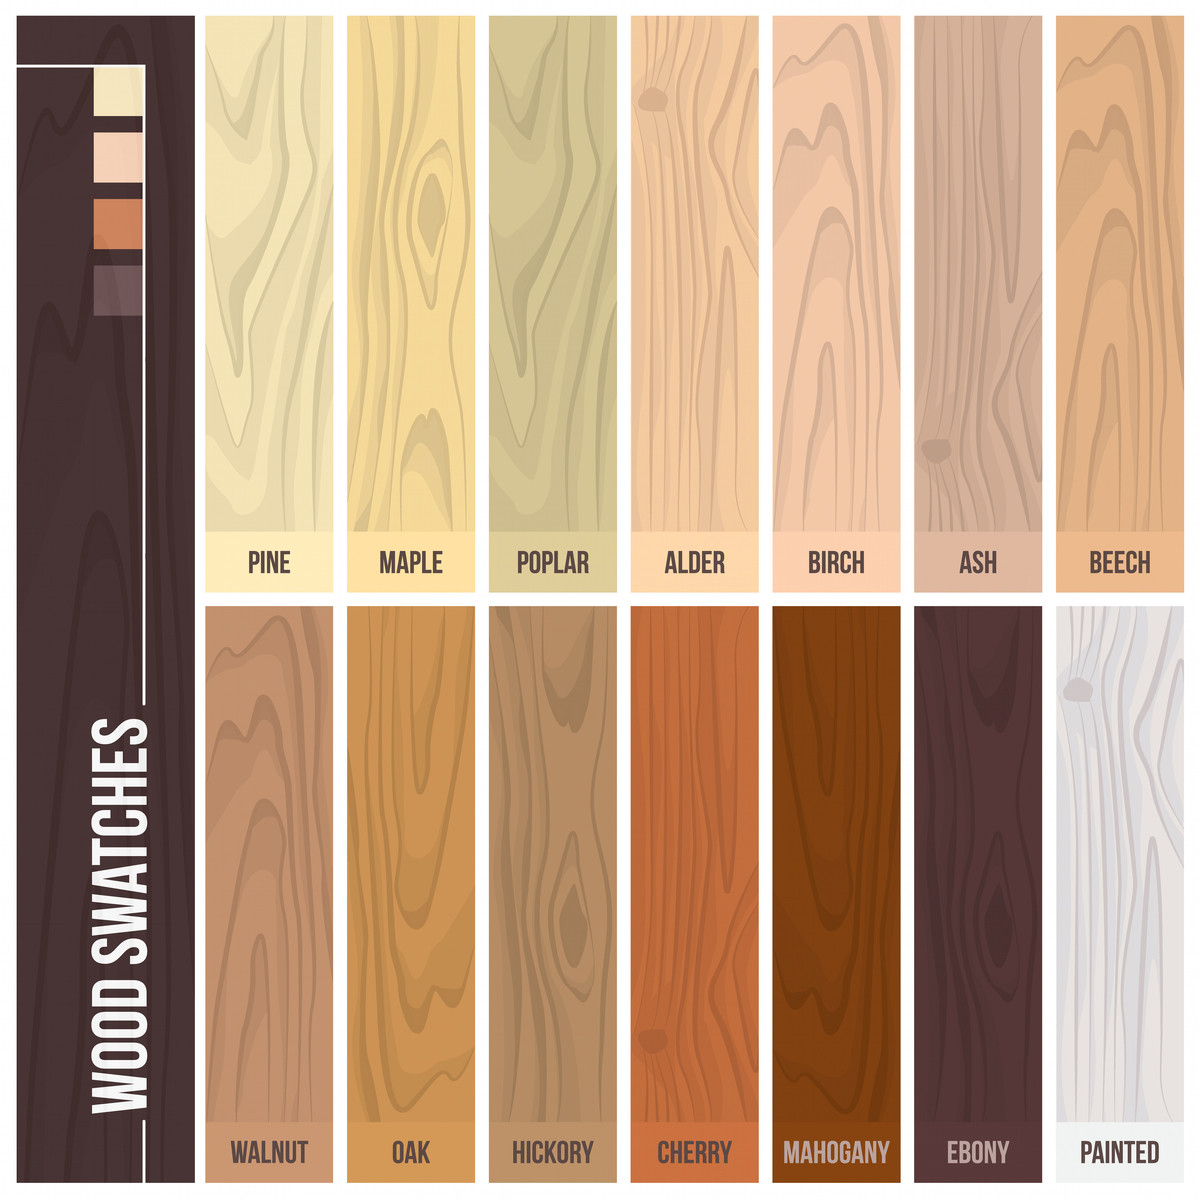 how do you install hardwood floors on a concrete slab of 12 types of hardwood flooring species styles edging dimensions pertaining to types of hardwood flooring illustrated guide